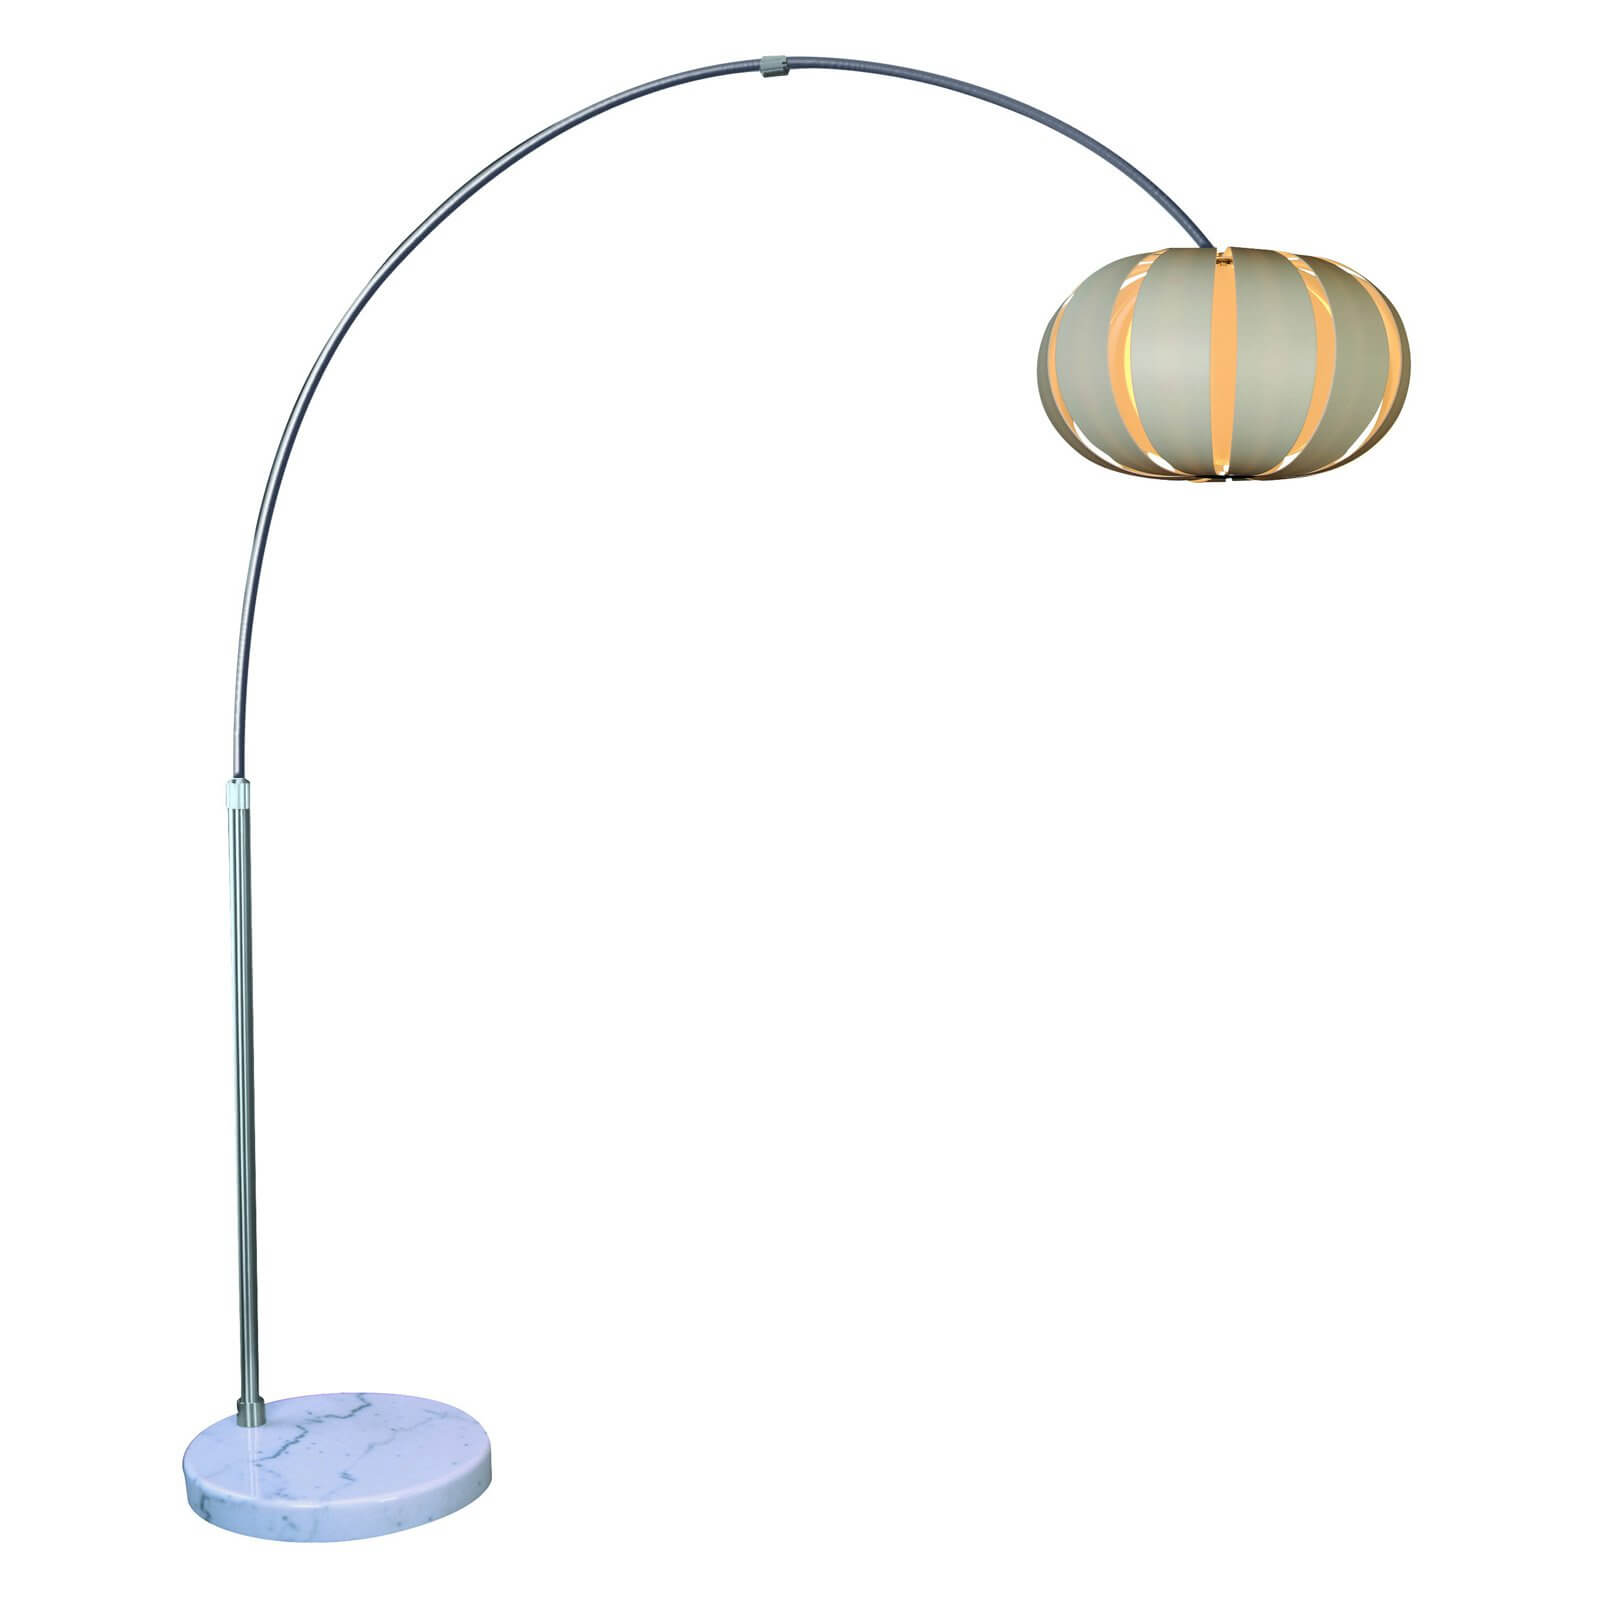 The first example here features metallic construction, with a curved spine over marble base, holding a spherical white petal shade.